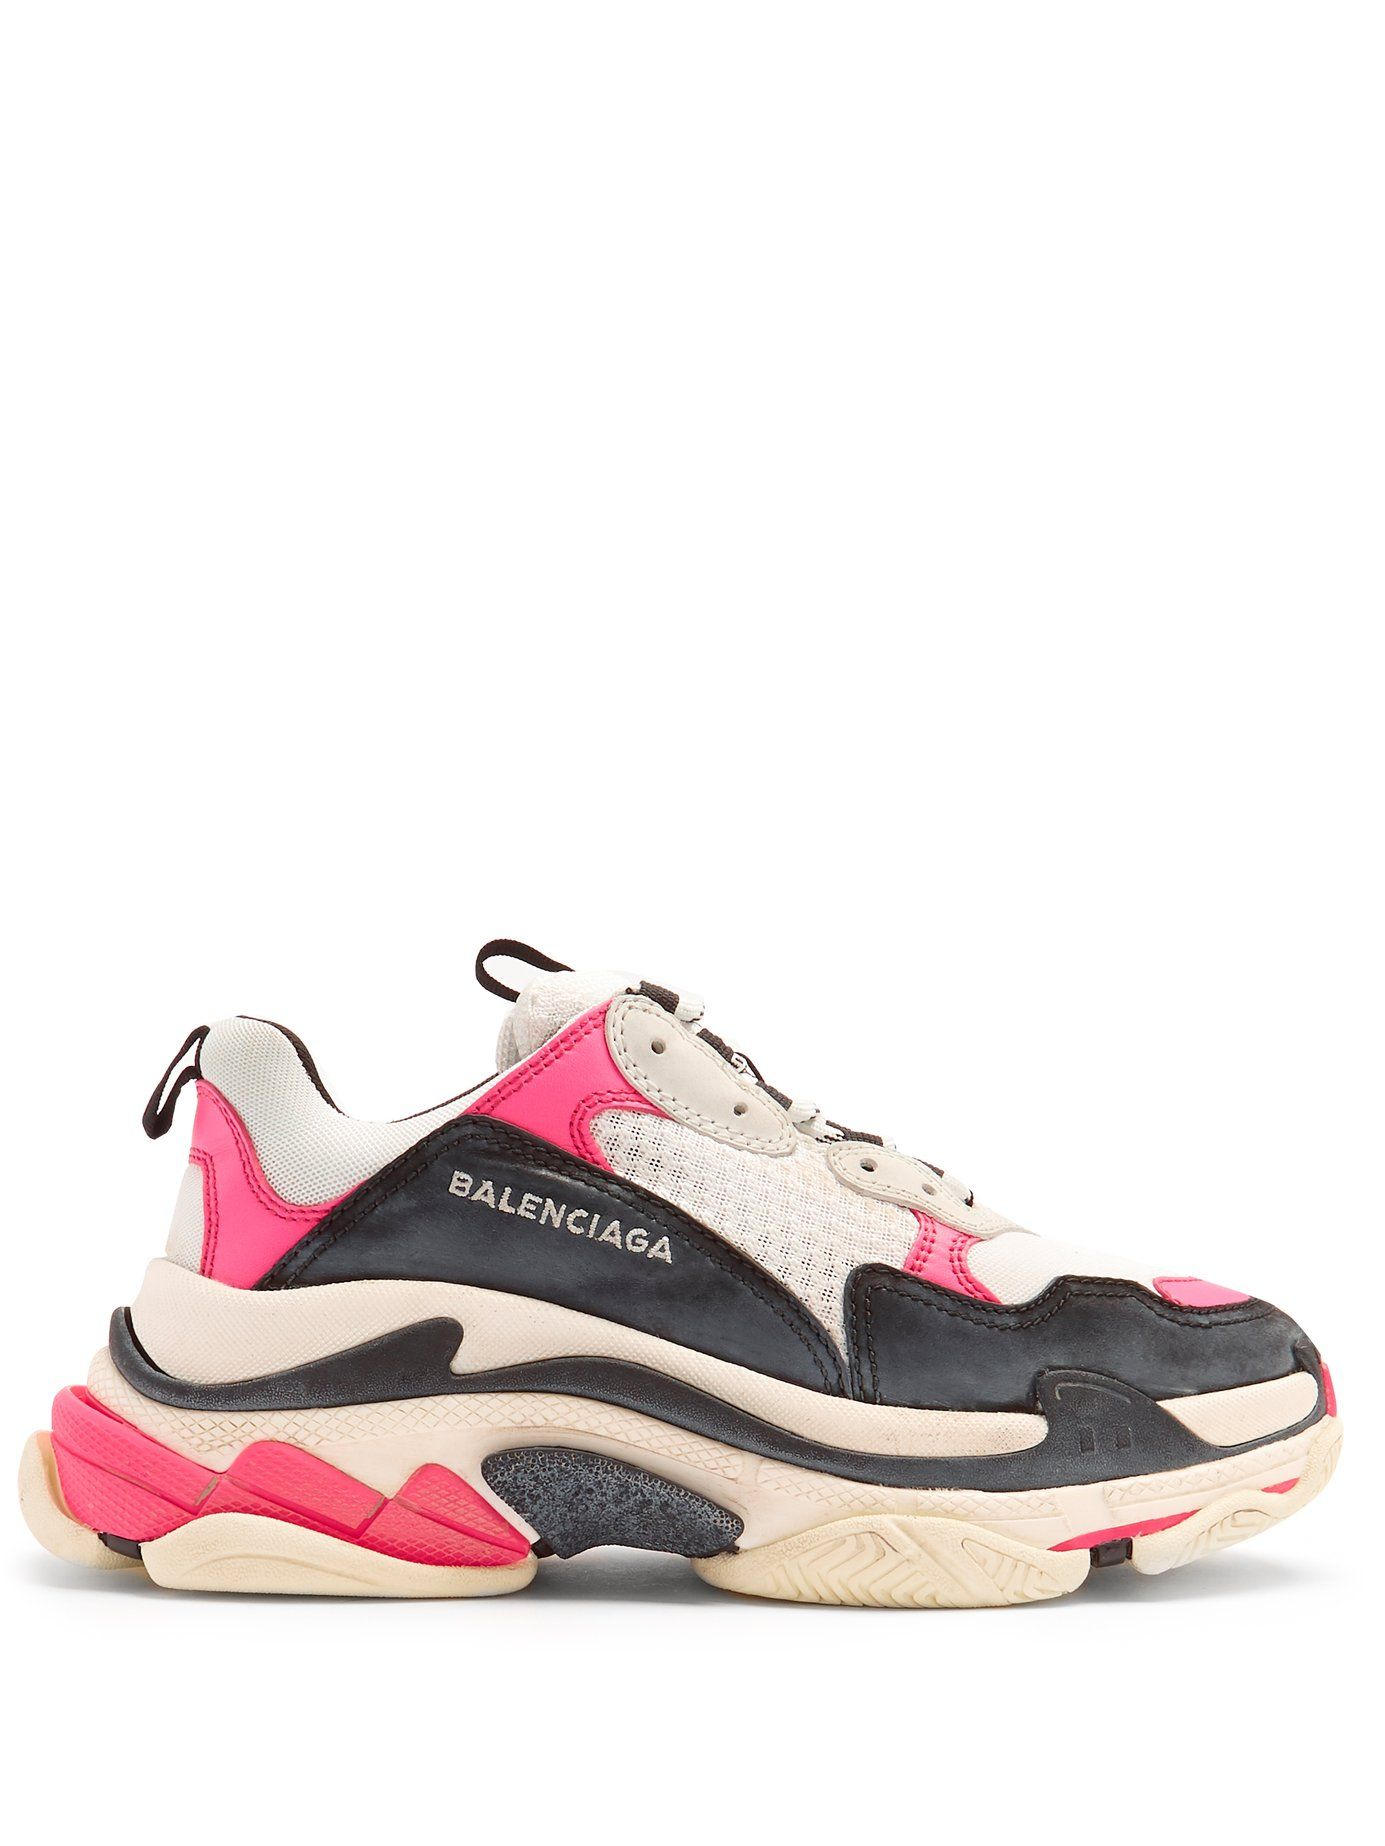 shop-balenciaga-triple-s-sneakers-neon-pink